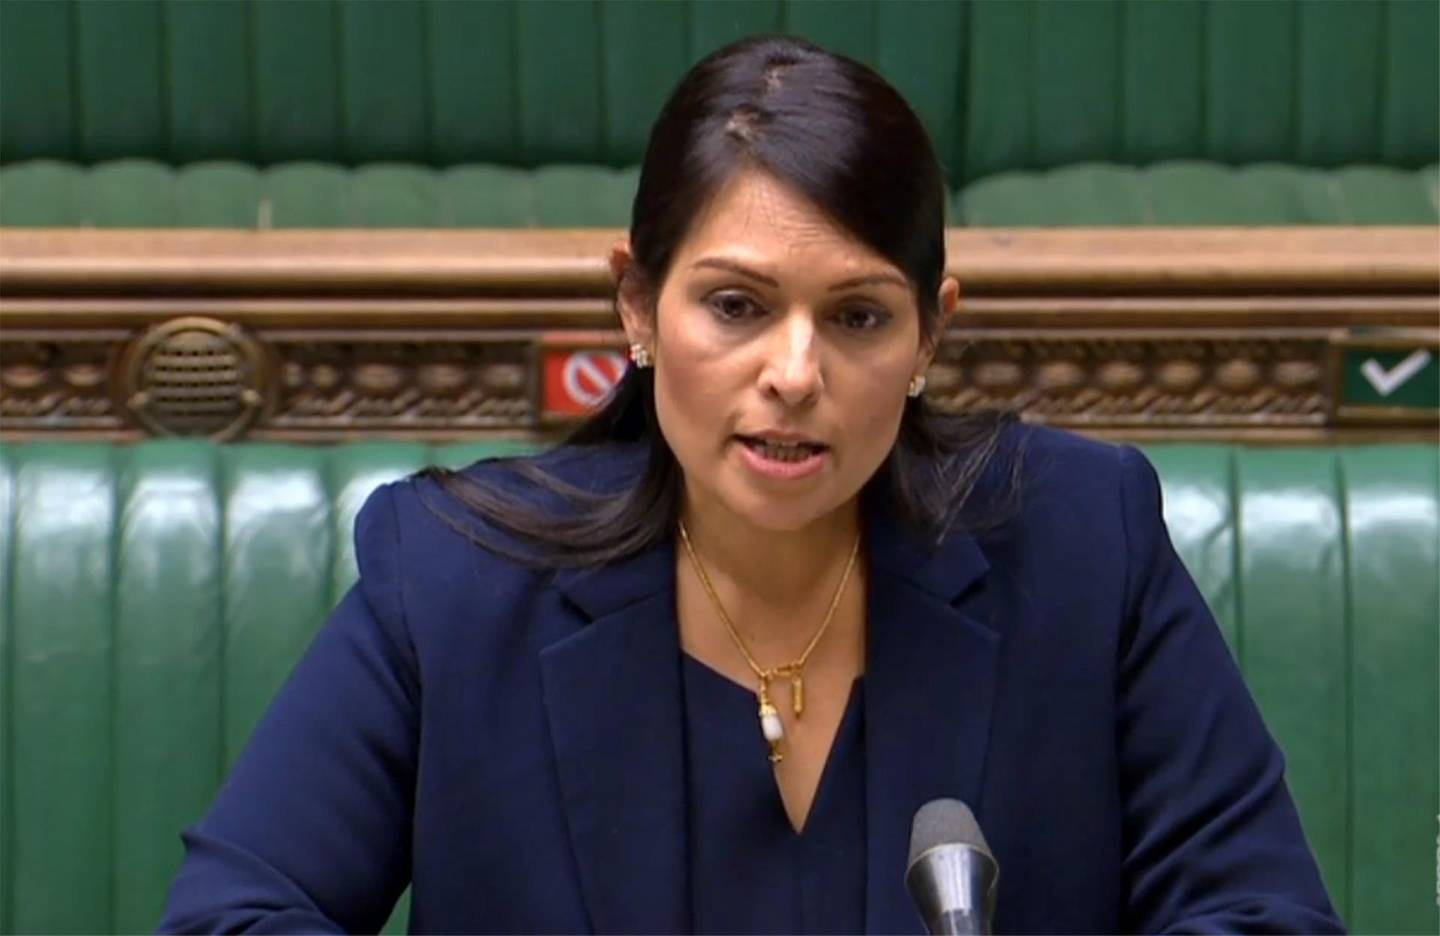 """A video grab from footage broadcast by the UK Parliament's Parliamentary Recording Unit (PRU) shows Britain's Home Secretary Priti Patel as she gives a statement to the House of Commons in London on June 8, 2020, on the public disorder at the Black Lives Matter protests over the weekend.  - RESTRICTED TO EDITORIAL USE - NO USE FOR ENTERTAINMENT, SATIRICAL, ADVERTISING PURPOSES - MANDATORY CREDIT """" AFP PHOTO / PRU """"  / AFP / PRU / STRINGER / RESTRICTED TO EDITORIAL USE - NO USE FOR ENTERTAINMENT, SATIRICAL, ADVERTISING PURPOSES - MANDATORY CREDIT """" AFP PHOTO / PRU """""""